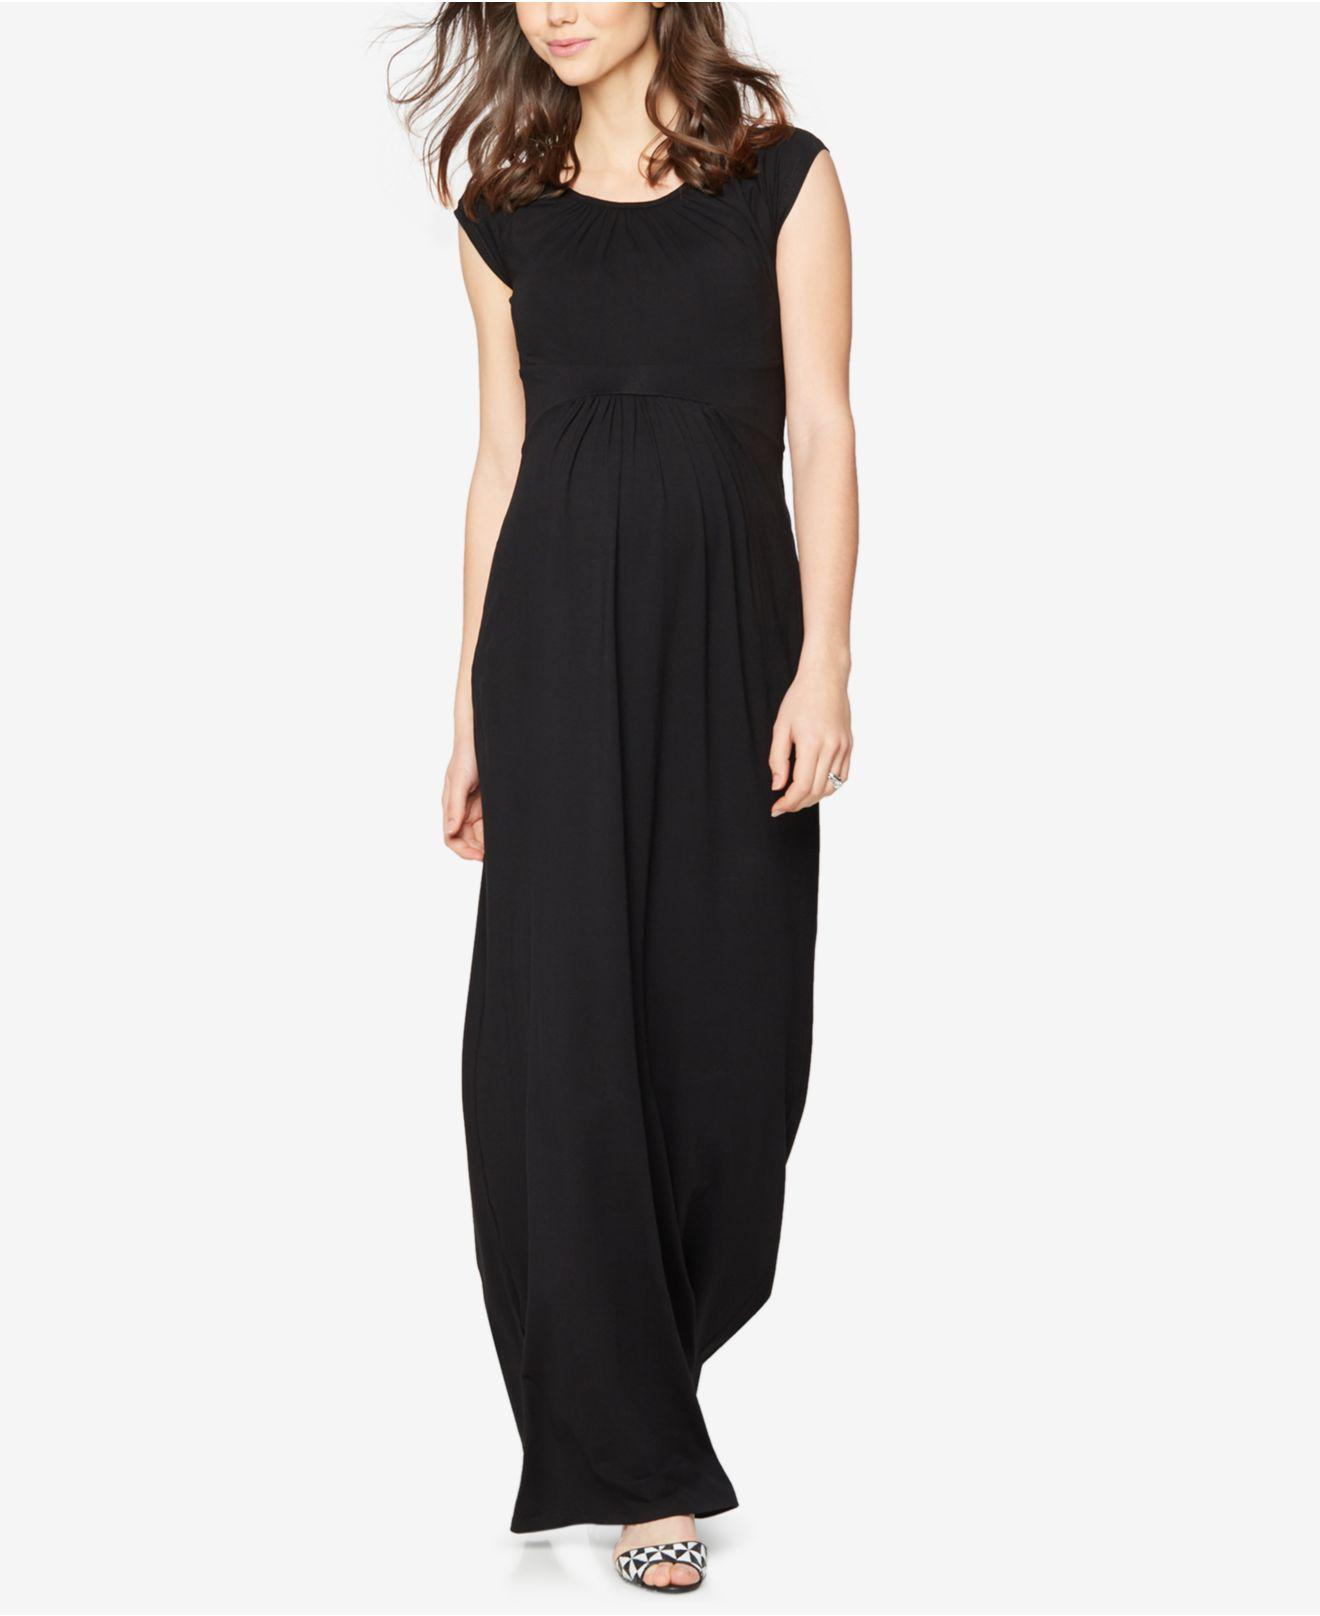 6c8a8af3f7060 Lyst - Isabella Oliver Maternity Cap-sleeve Maxi Dress in Black